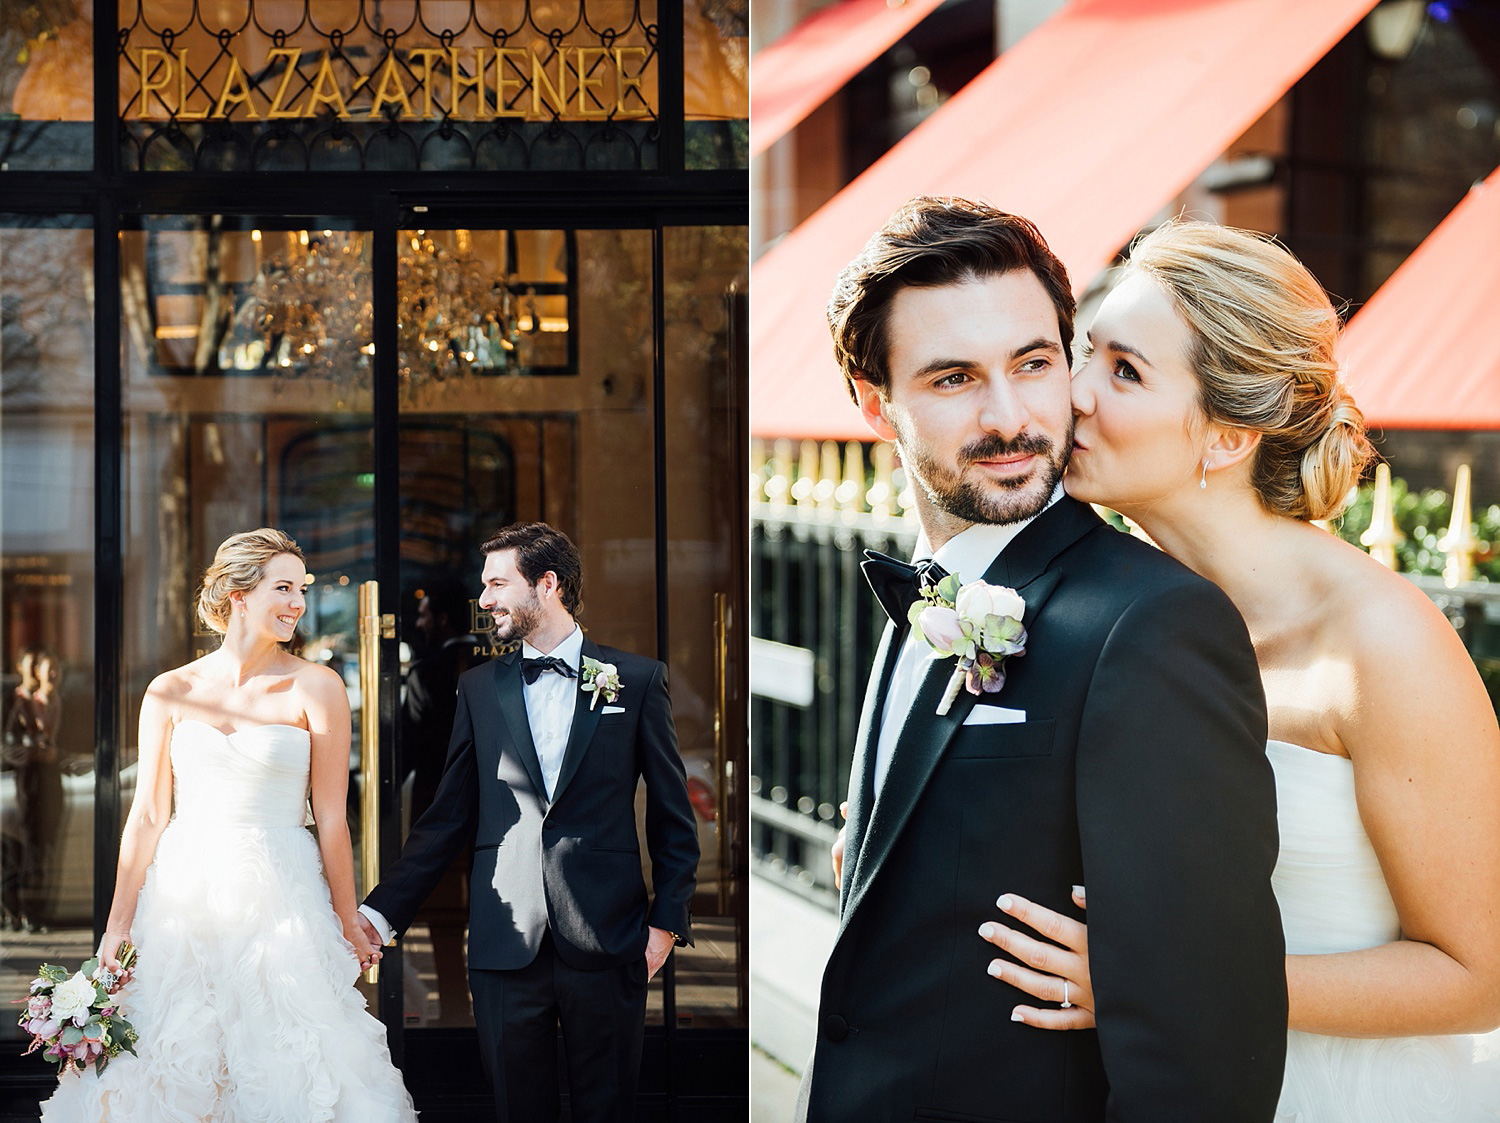 Katie_Mitchell_Photography_Plaza_Anthenee_Paris_Styled_Shoot_32.jpg